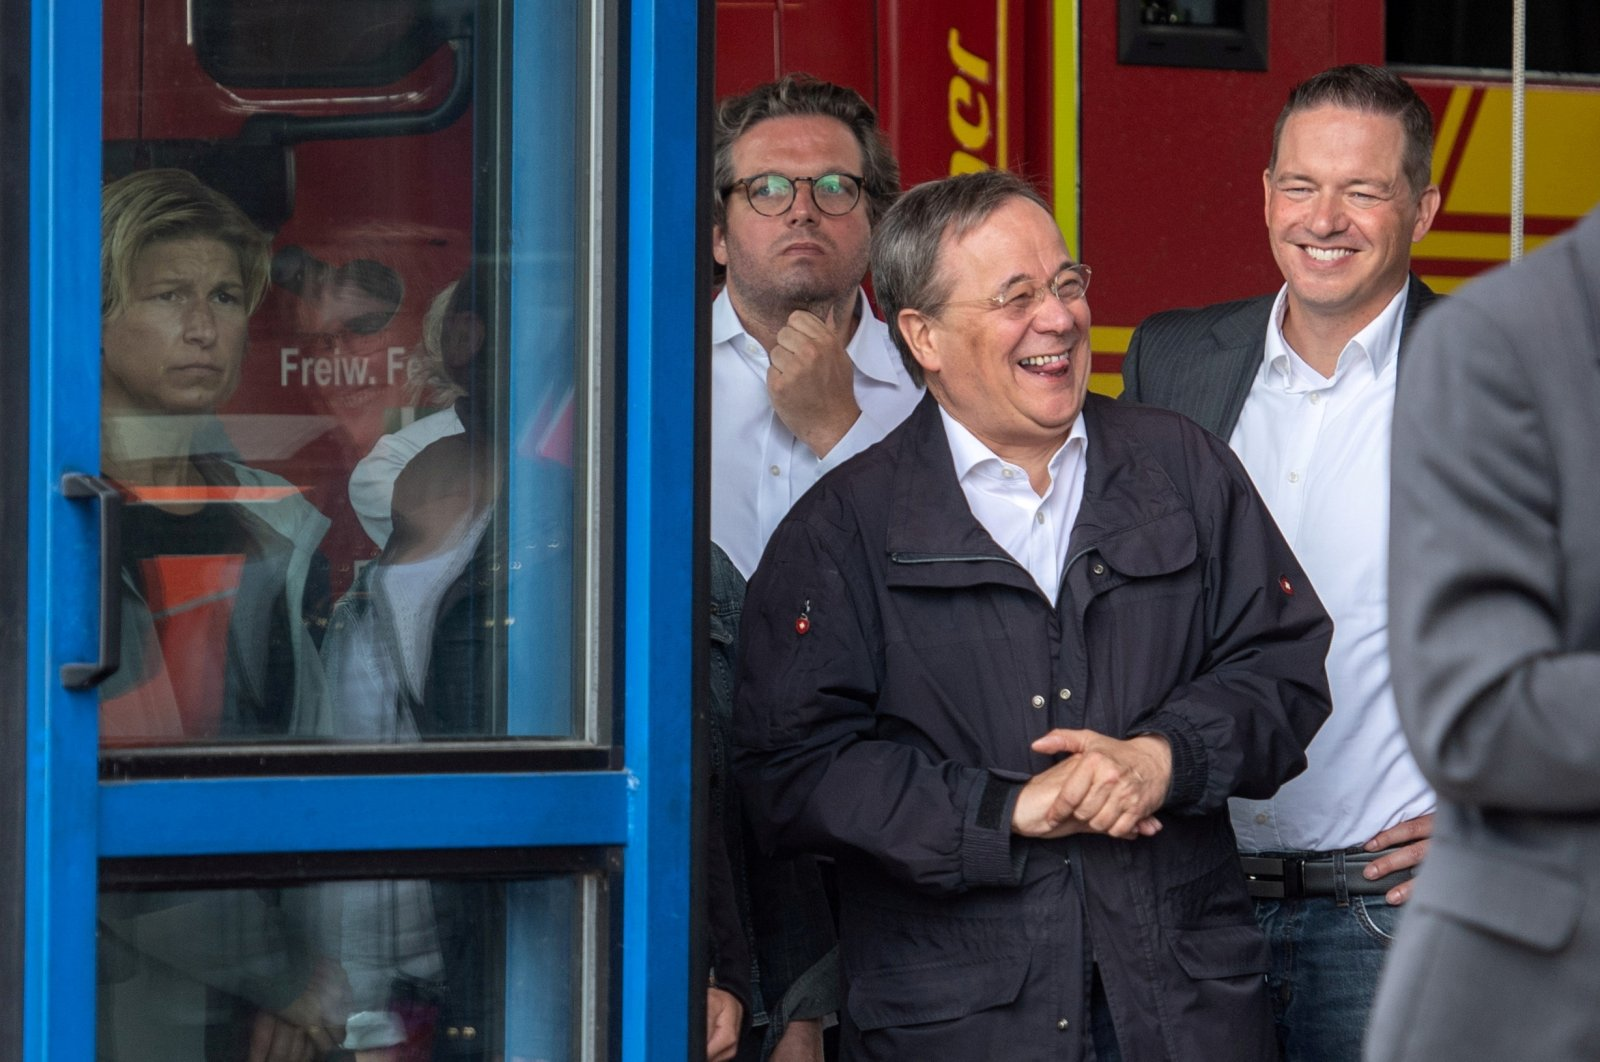 CDU leader and North Rhine-Westphalia's State Premier Armin Laschet laughs as the German president (unseen) delivers a speech during their visit to flood-hit Erftstadt, Germany July 17, 2021. (Marius Becker/Pool/File Photo)